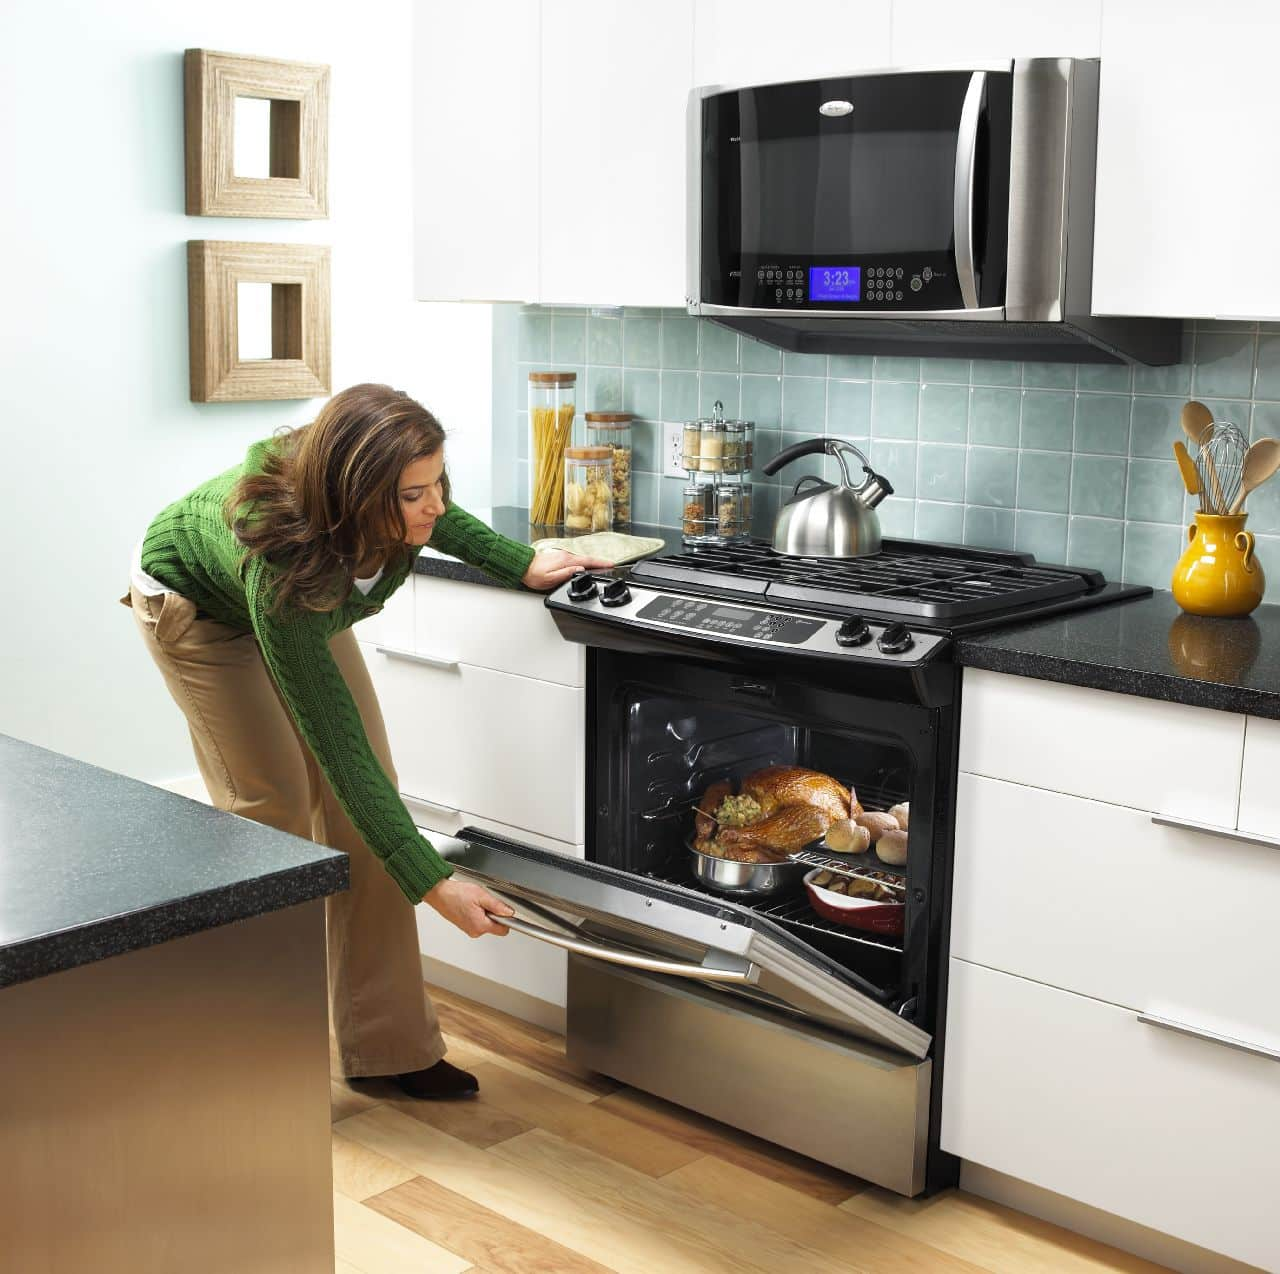 convection oven cooking recipe using leftover turkey fred 39 s appliance. Black Bedroom Furniture Sets. Home Design Ideas